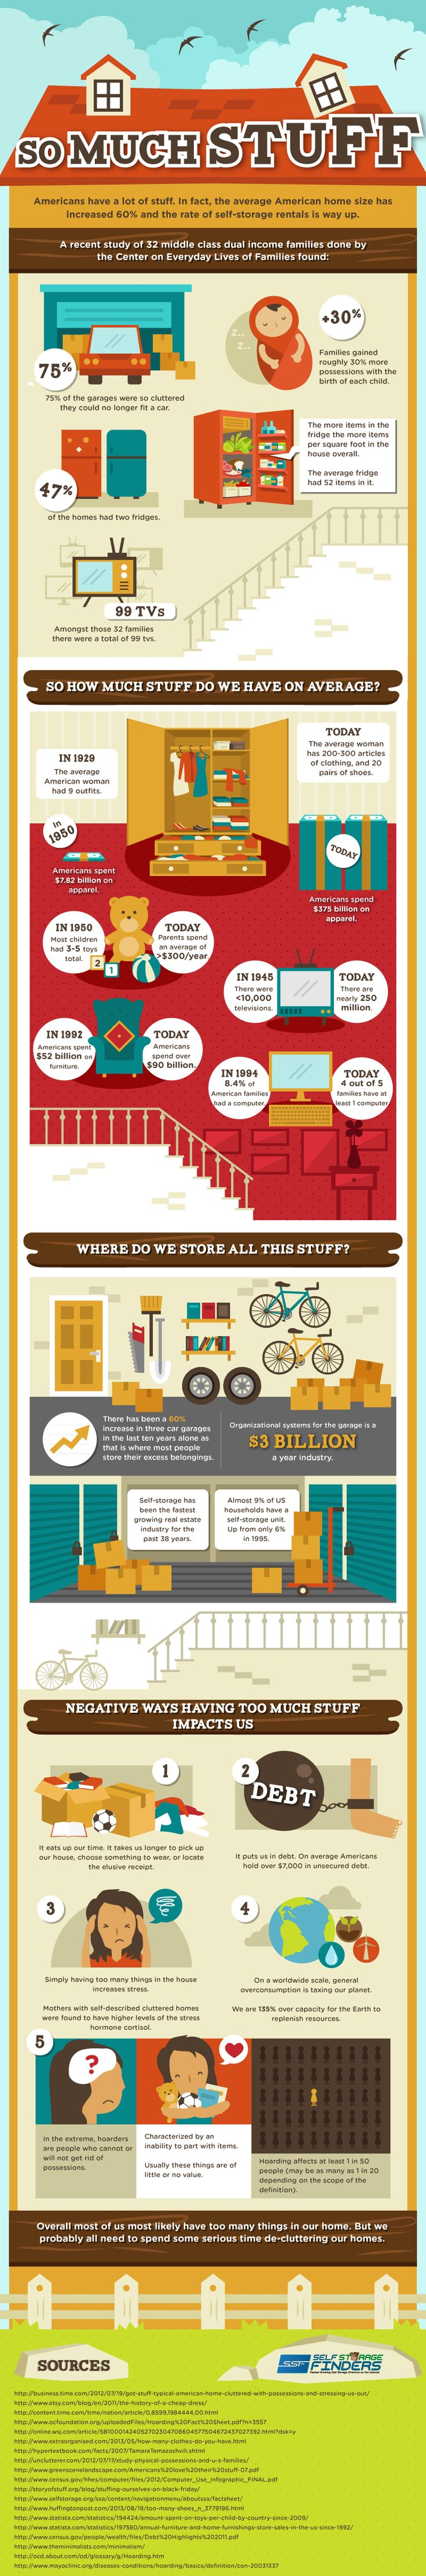 Too much stuff can lead to an unusual addiction called hoarding. Americans have a lot of stuff. In fact, the average American home size has increased 60% and the rate of self-storage rentals is way up.